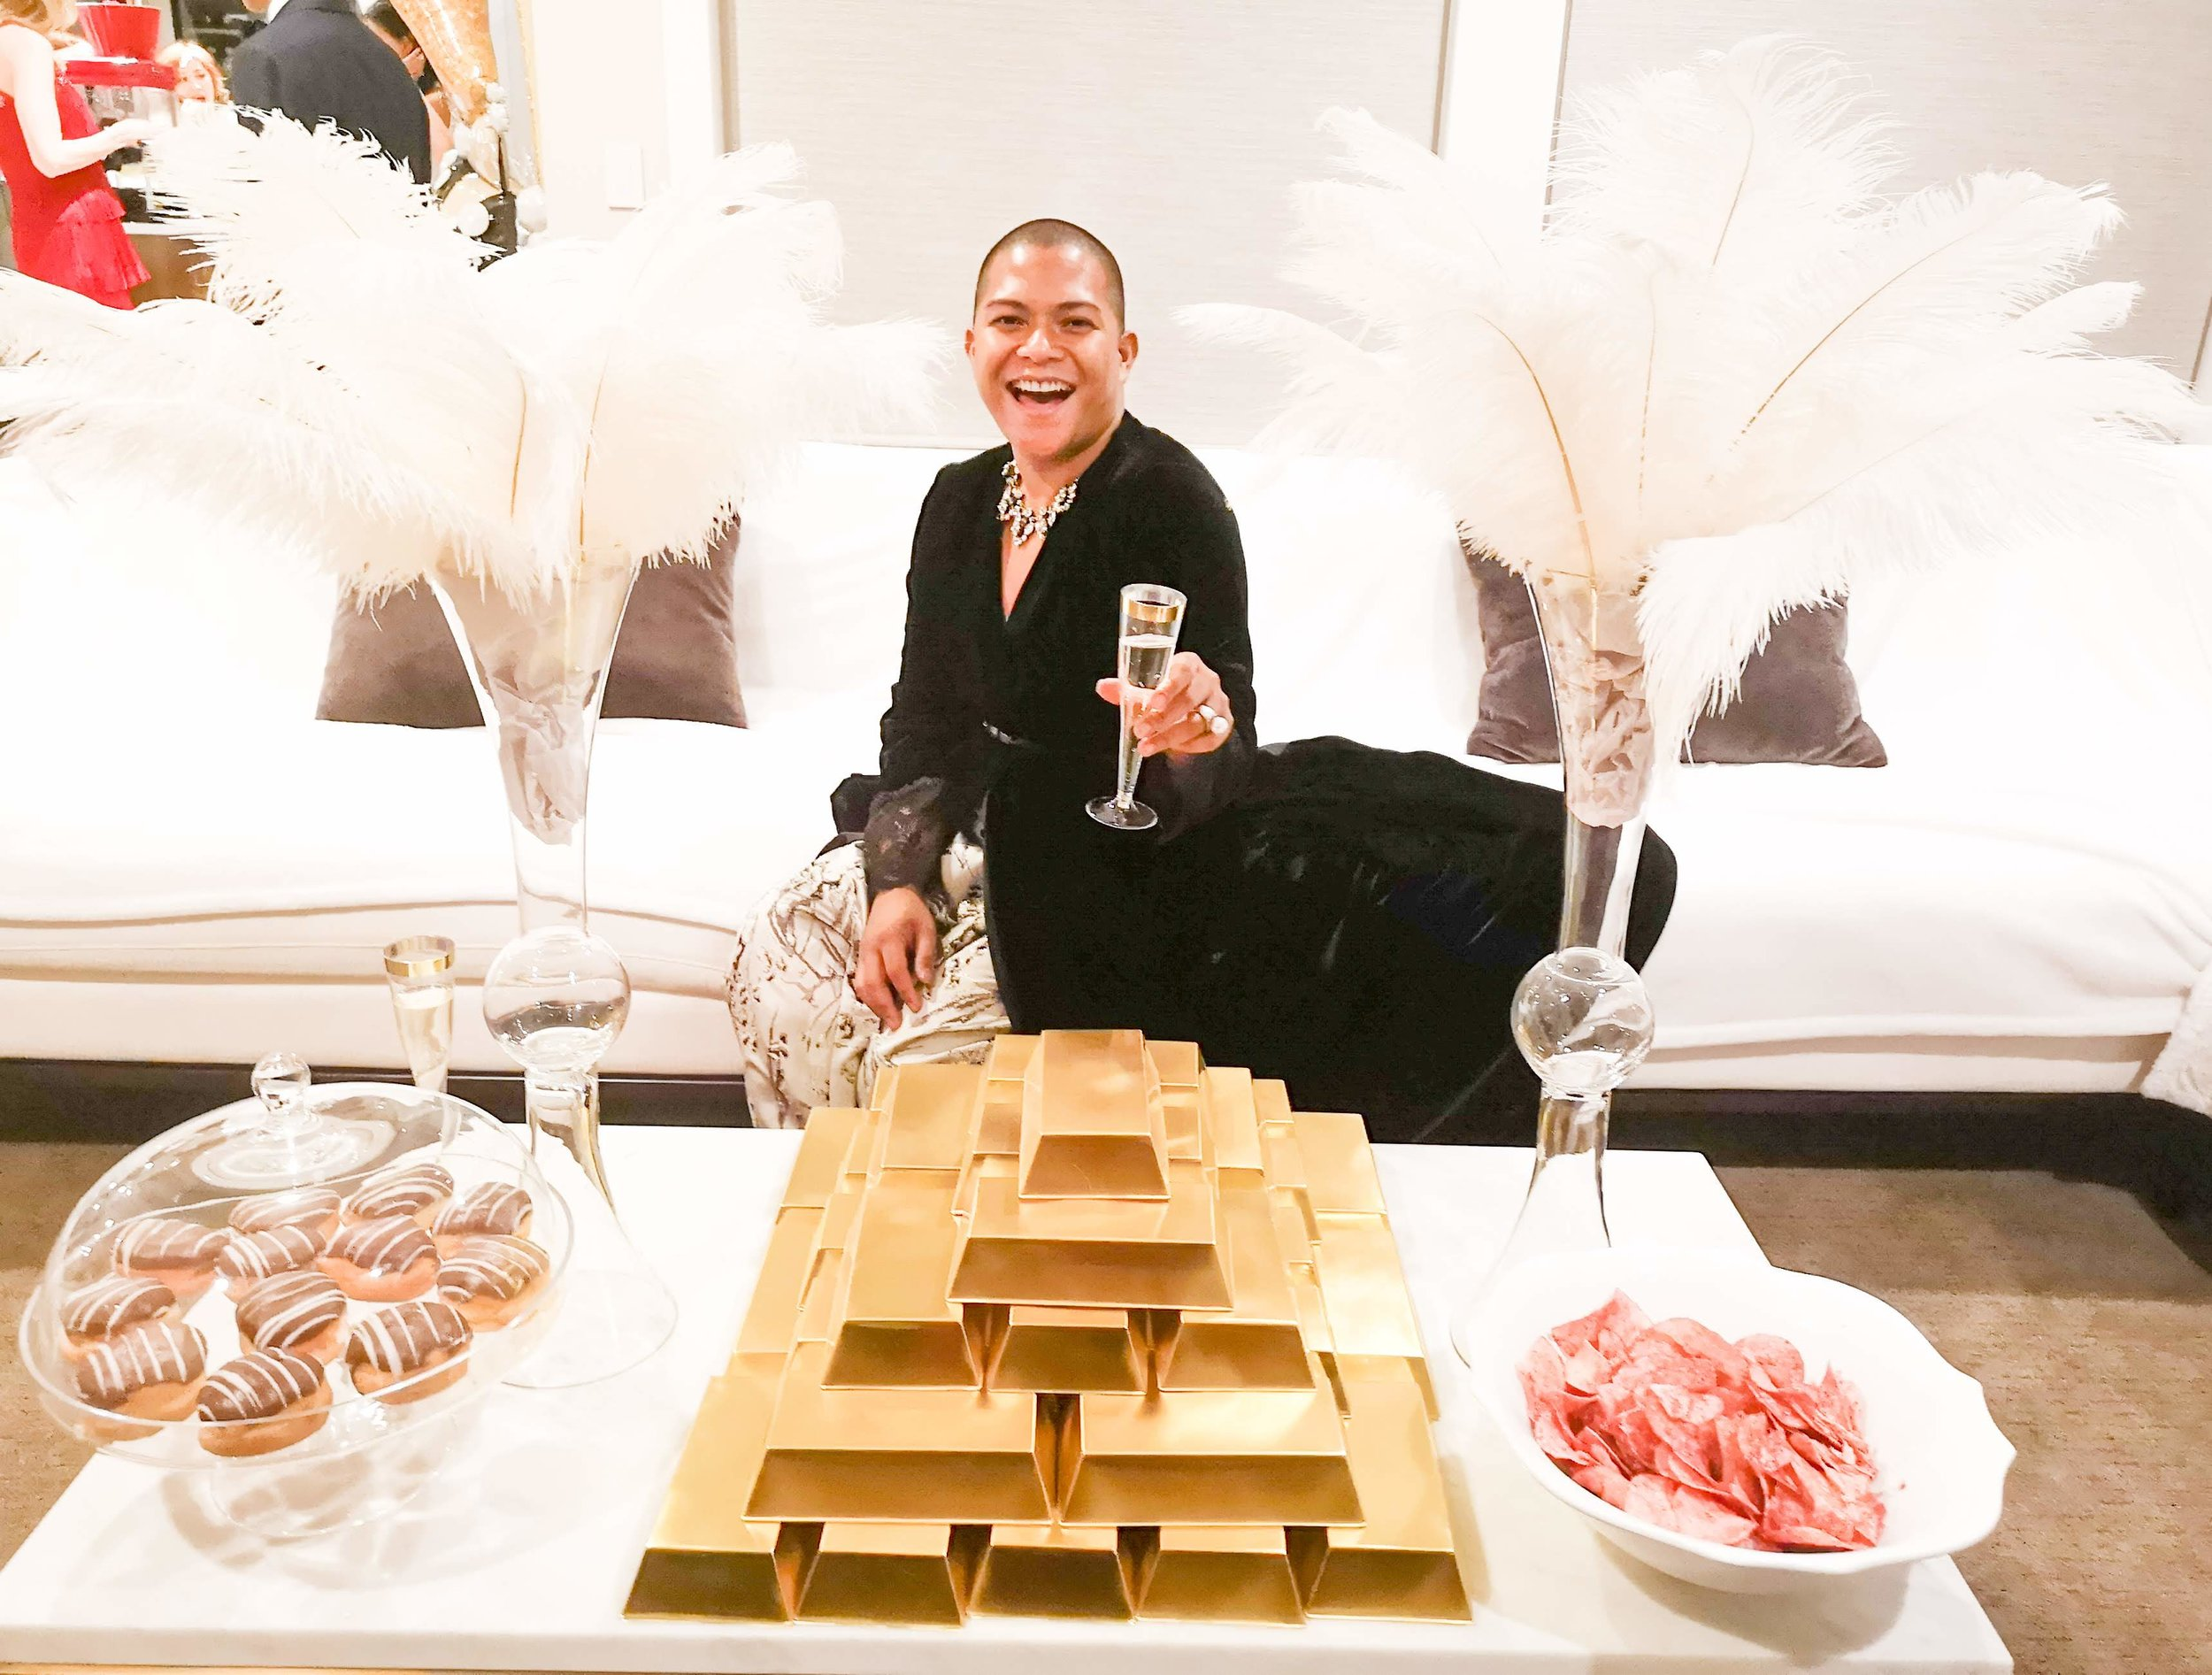 With gold bars, sweets and salty - cheers to 2019!!! Thank you to our lovely hosts. xxx